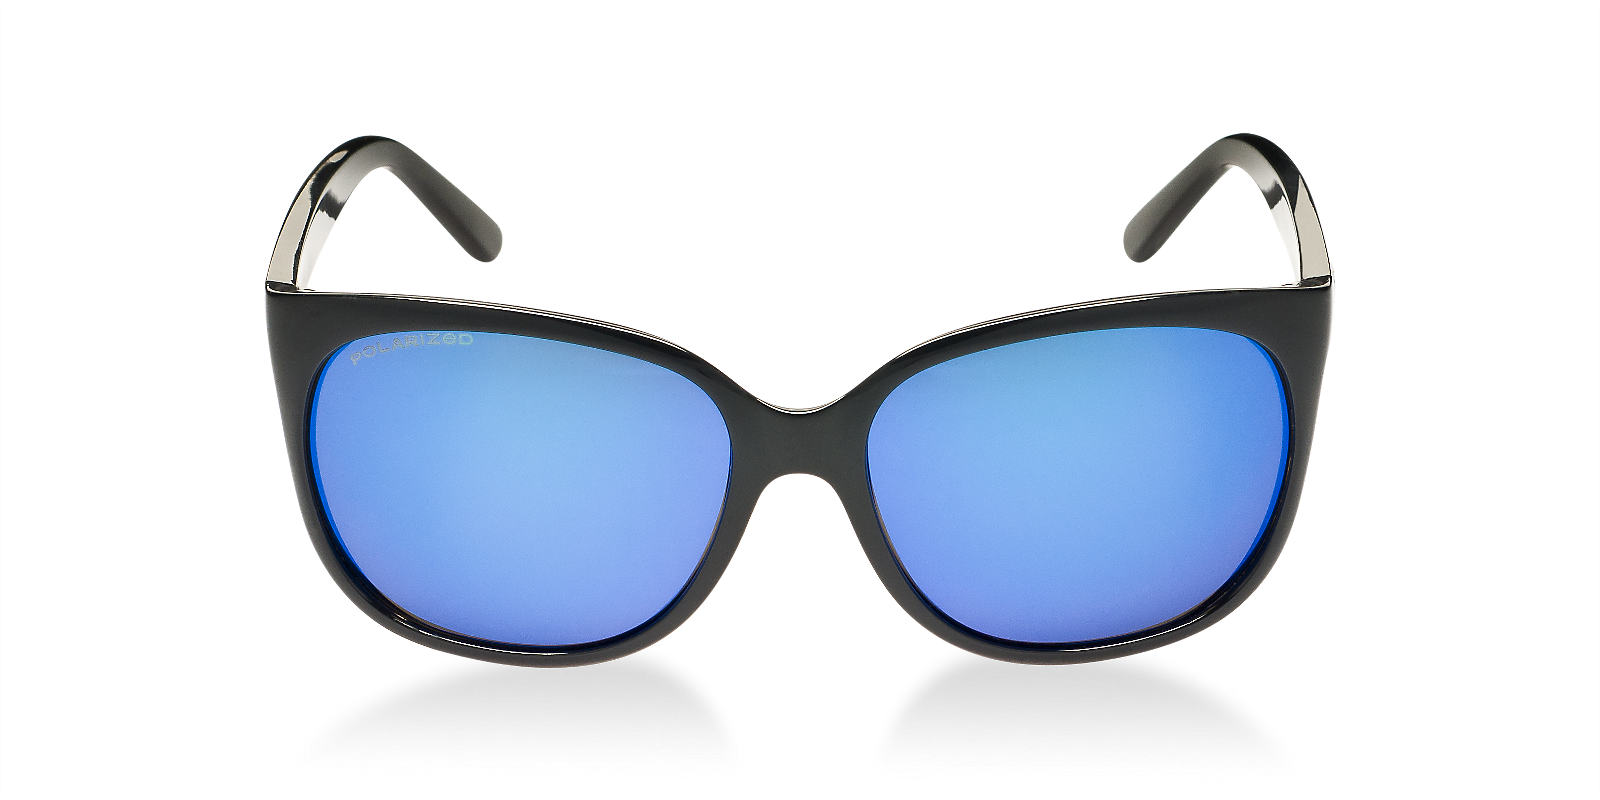 Sunglasses Blue Images Png image #608